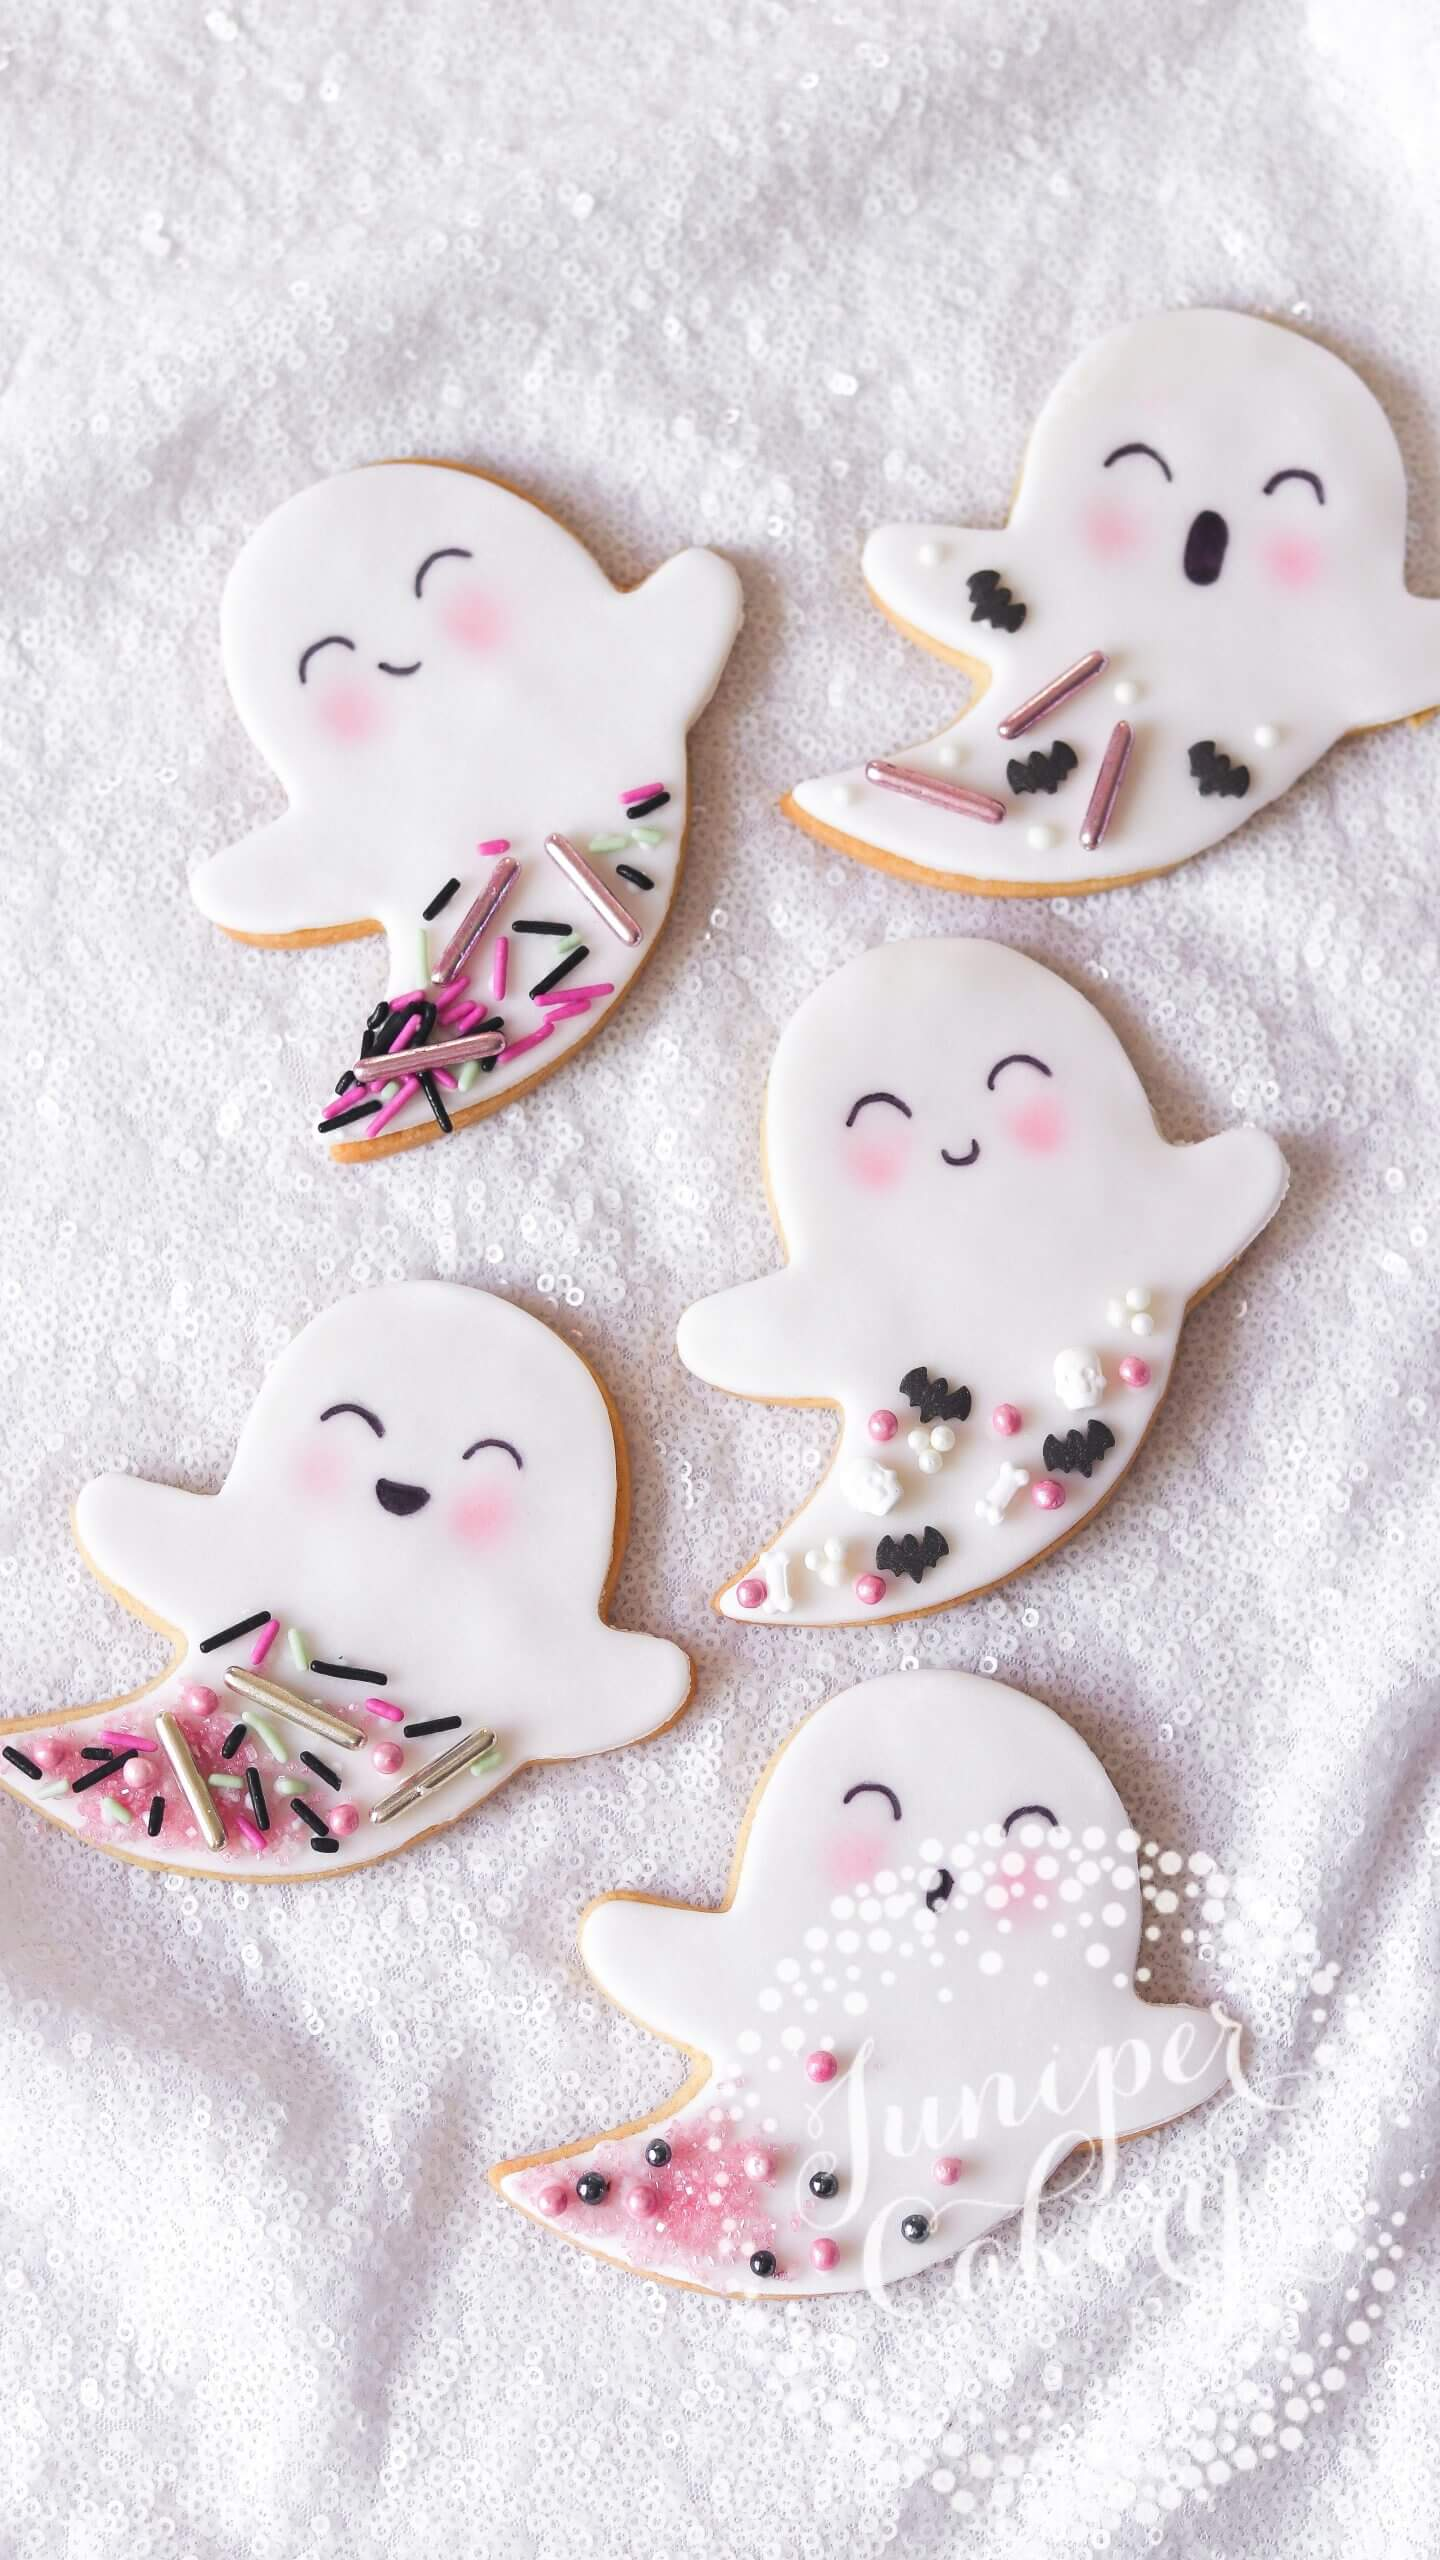 Sweet ghost cookies for Halloween by Juniper Cakery